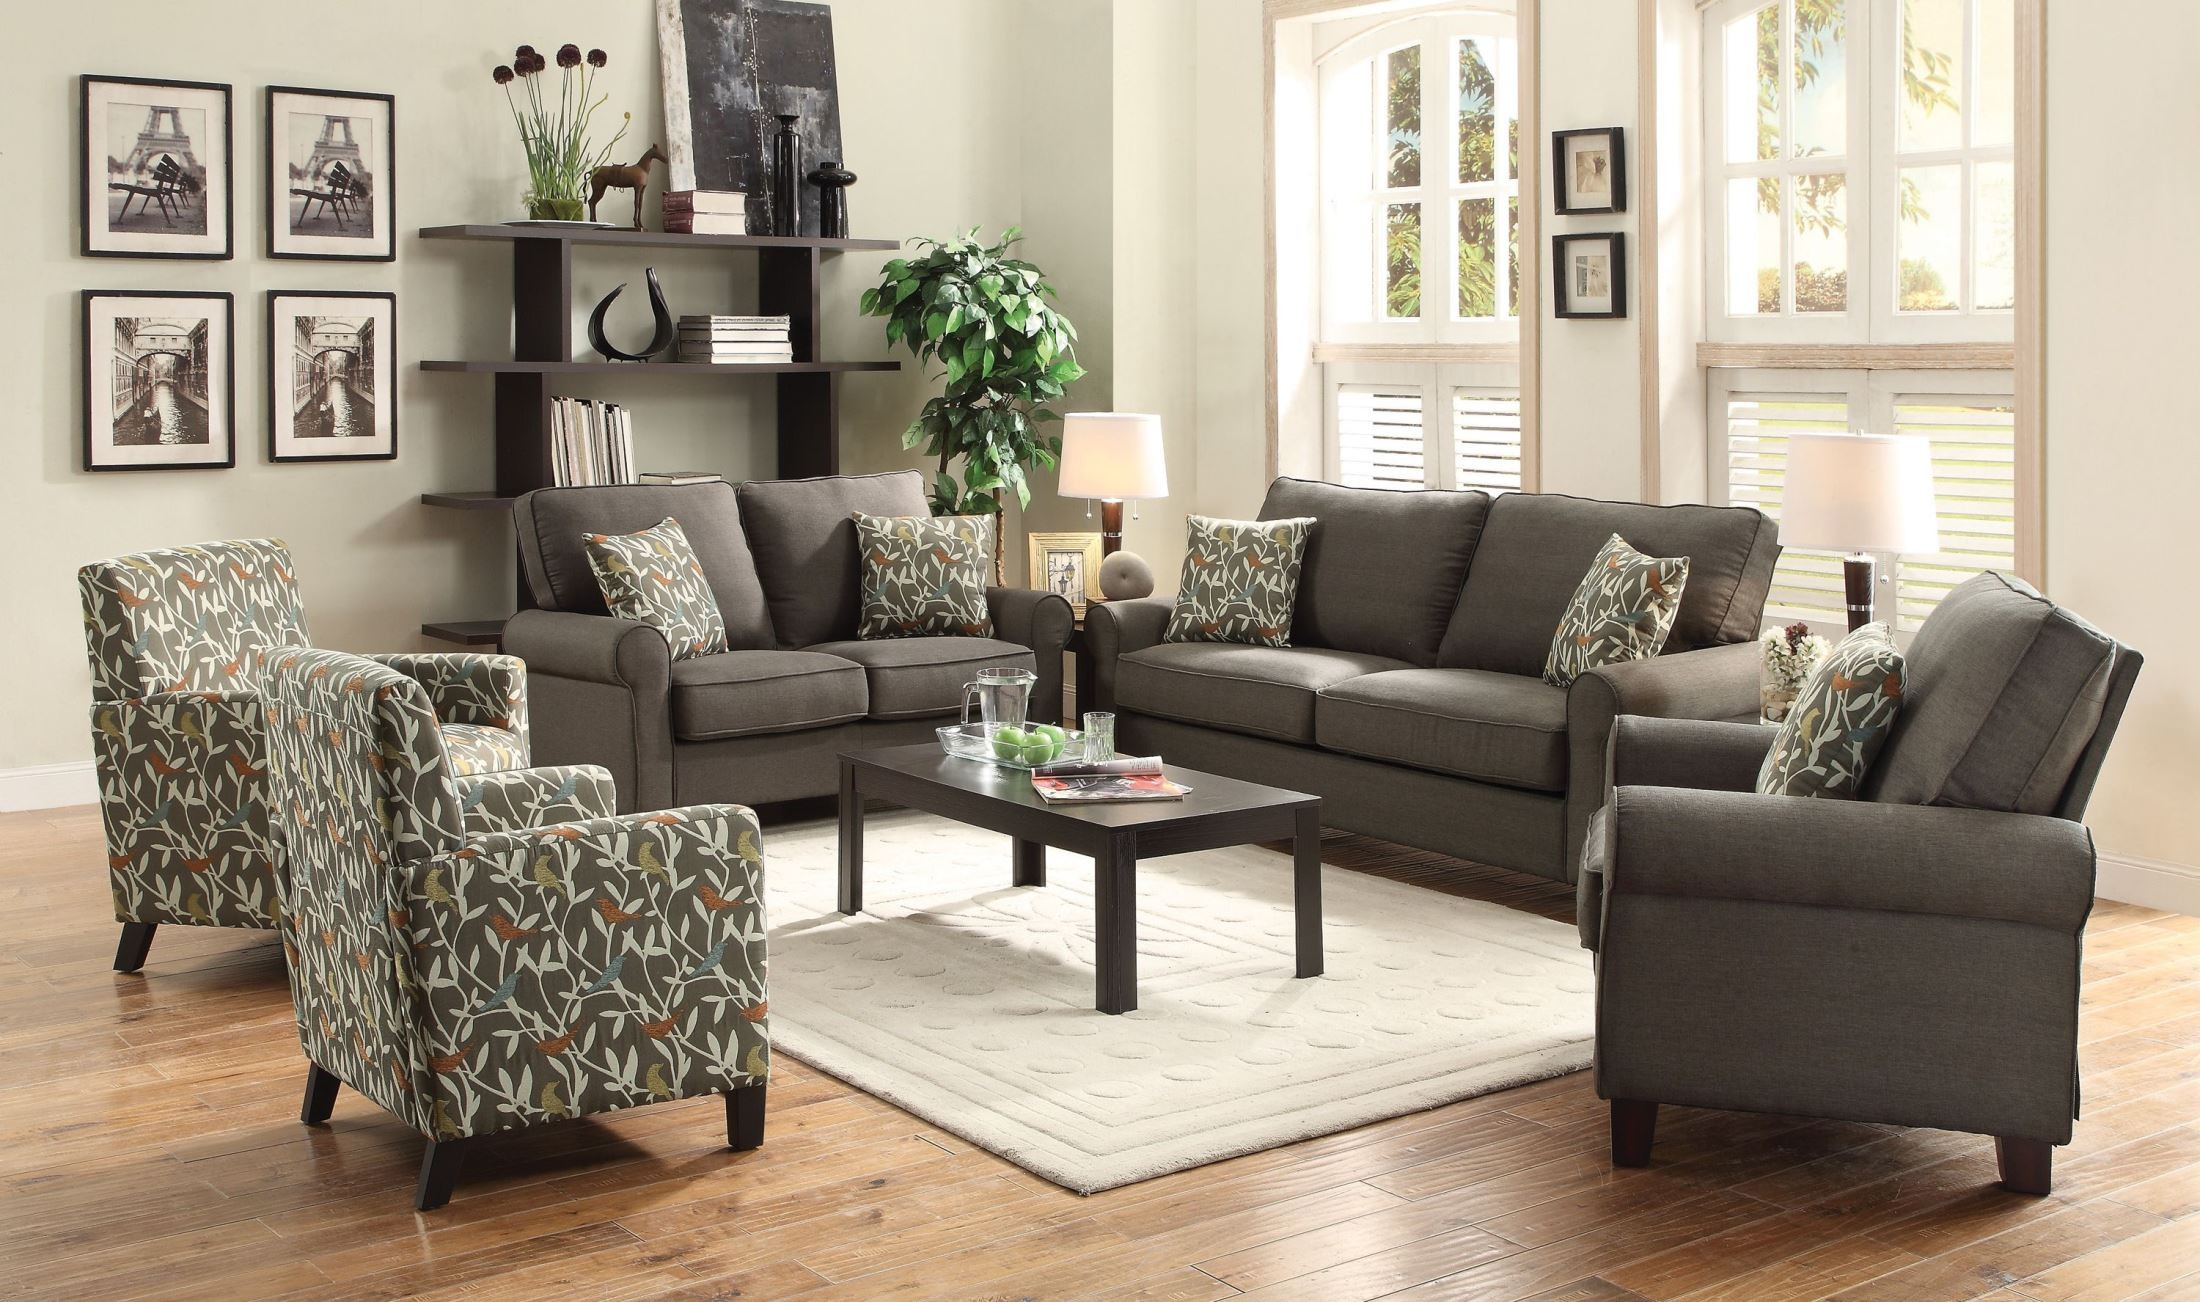 Noella Grey Living Room Set From Coaster 504781